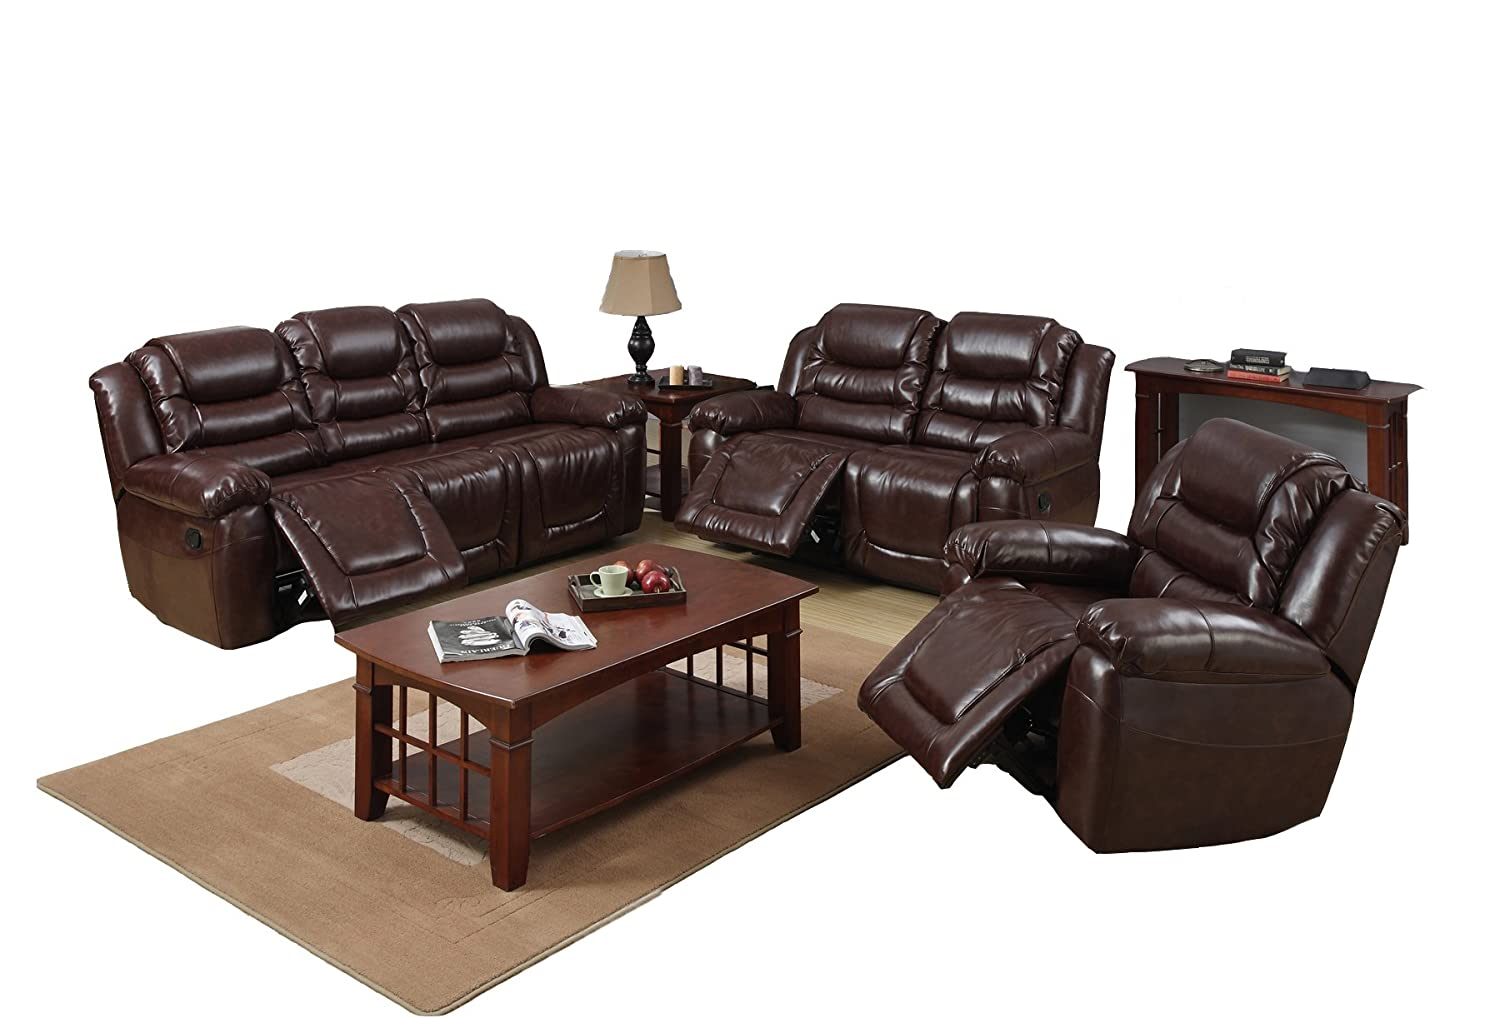 Beverly Furniture Birmingham Bonded Leather 3-Piece Reclining Sofa Set with 5 Recliners and Rocker Chair